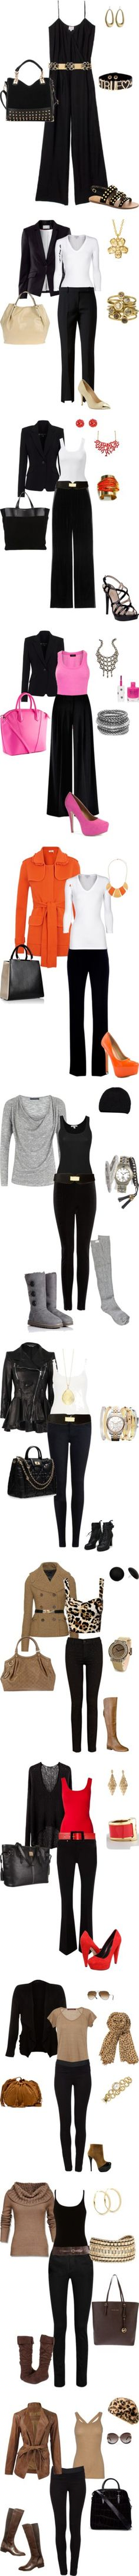 """""""Eleganta"""" by estilosymas on Polyvore Would not wear the pink or orange and the red outfit everything else is good;-)"""